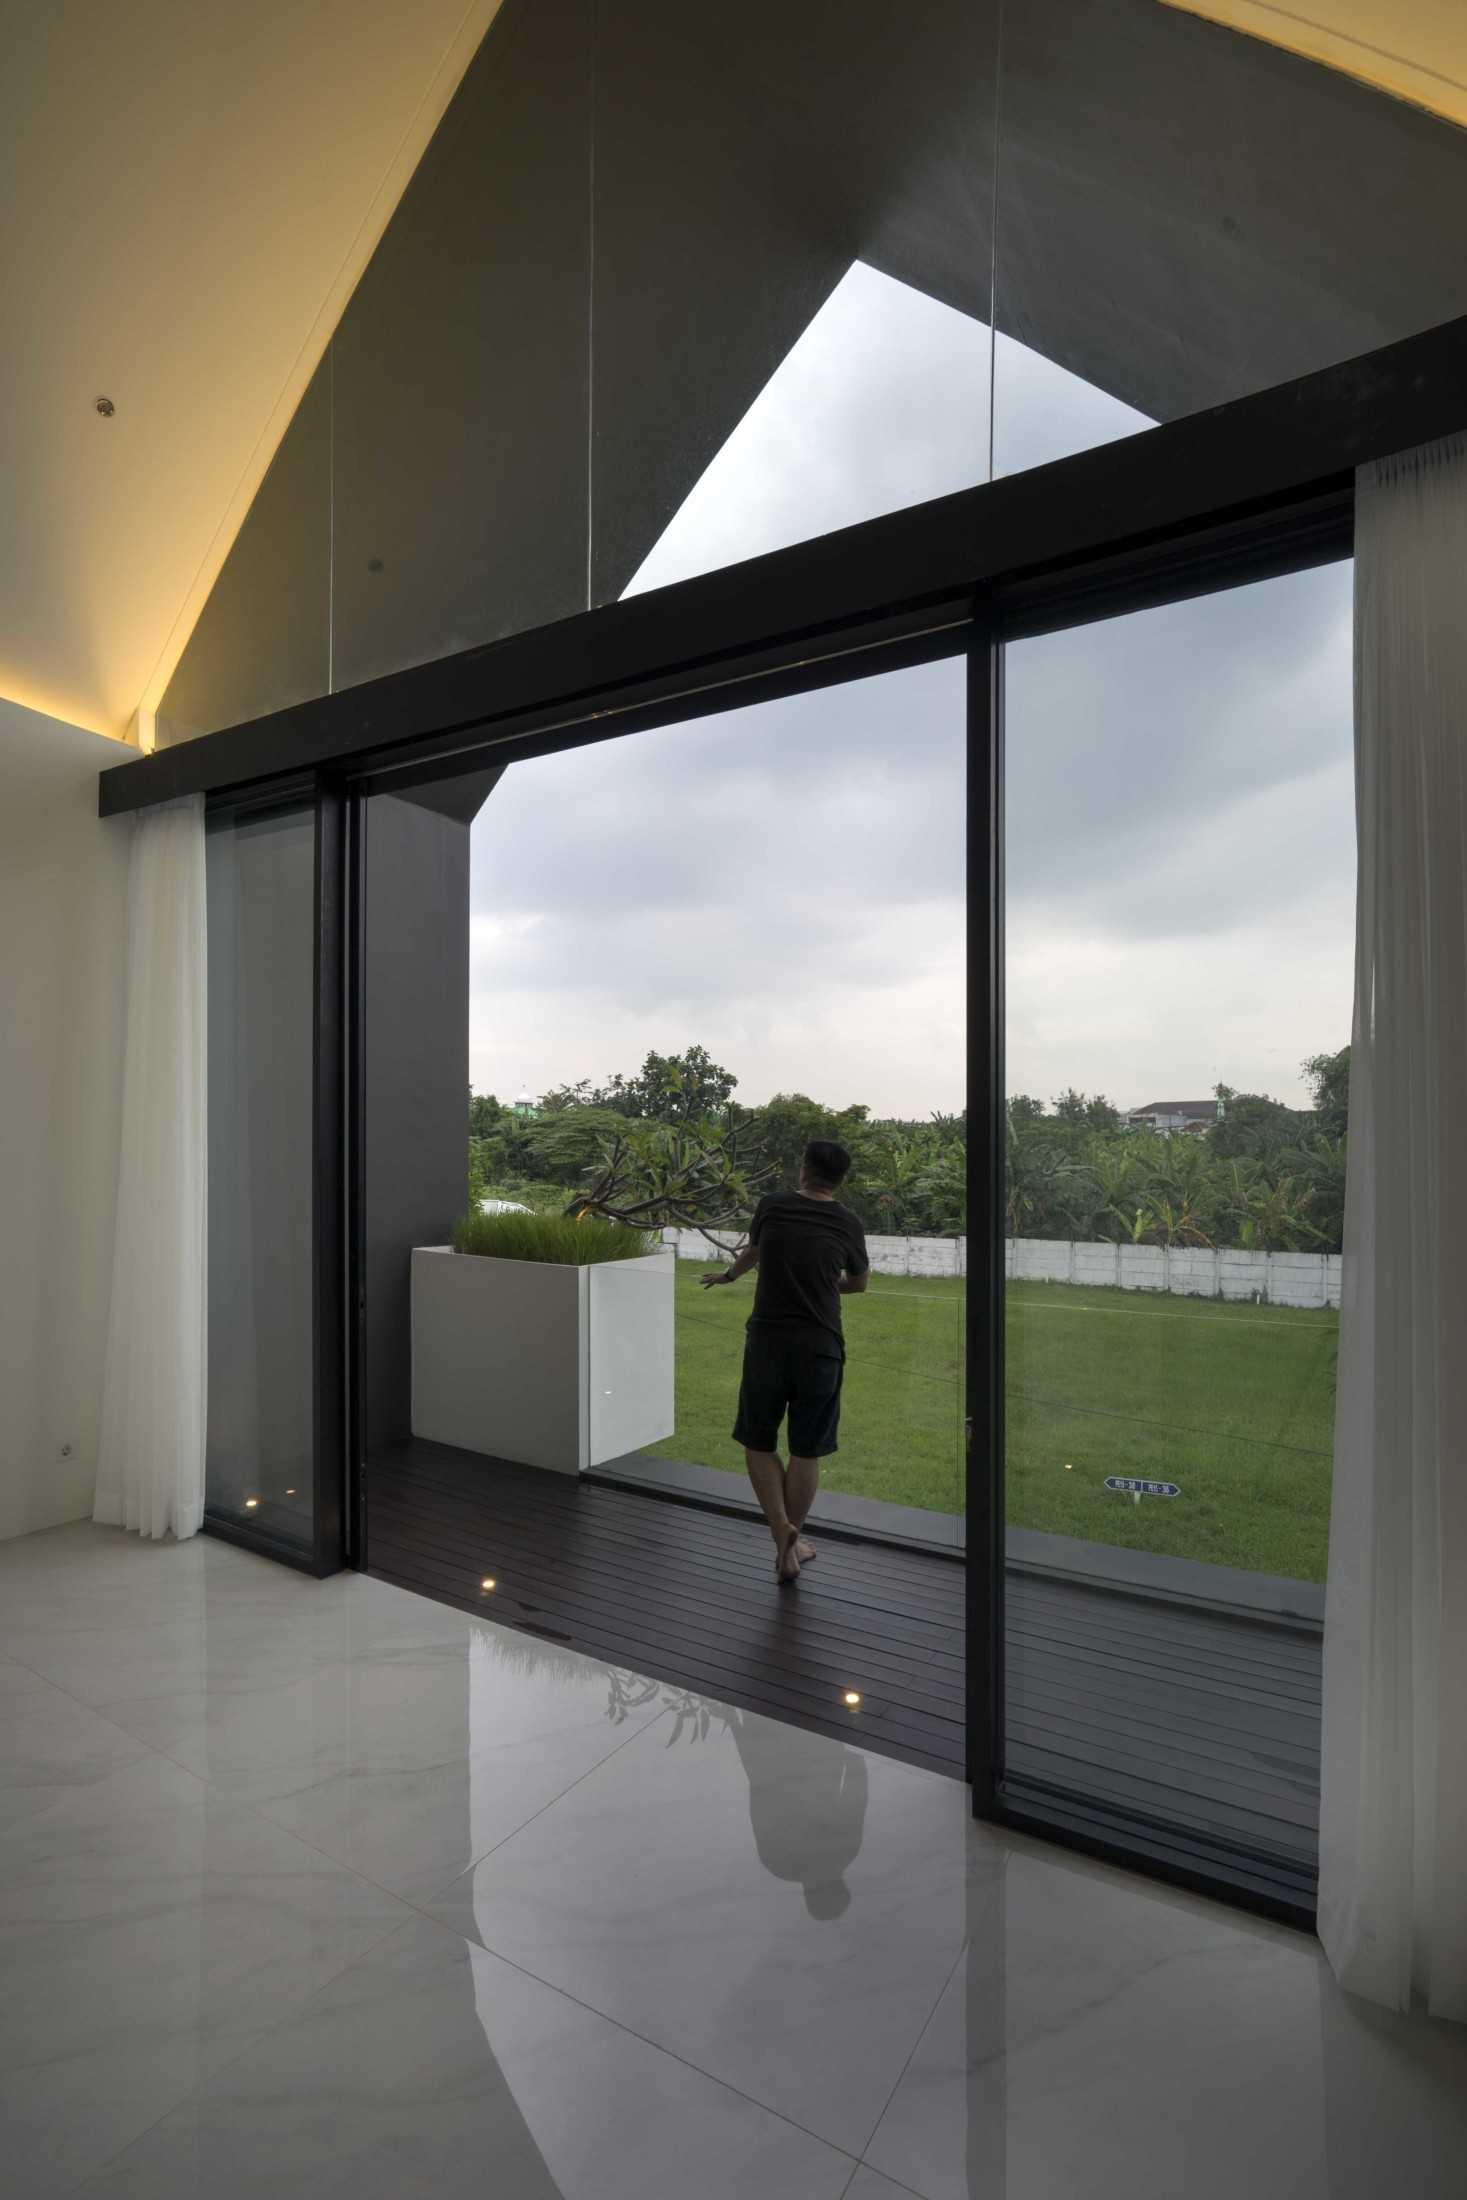 Simple Projects Architecture 'hhh' House Surabaya, Kota Sby, Jawa Timur, Indonesia  Simple-Projects-Architecture-Hhh-House  75033